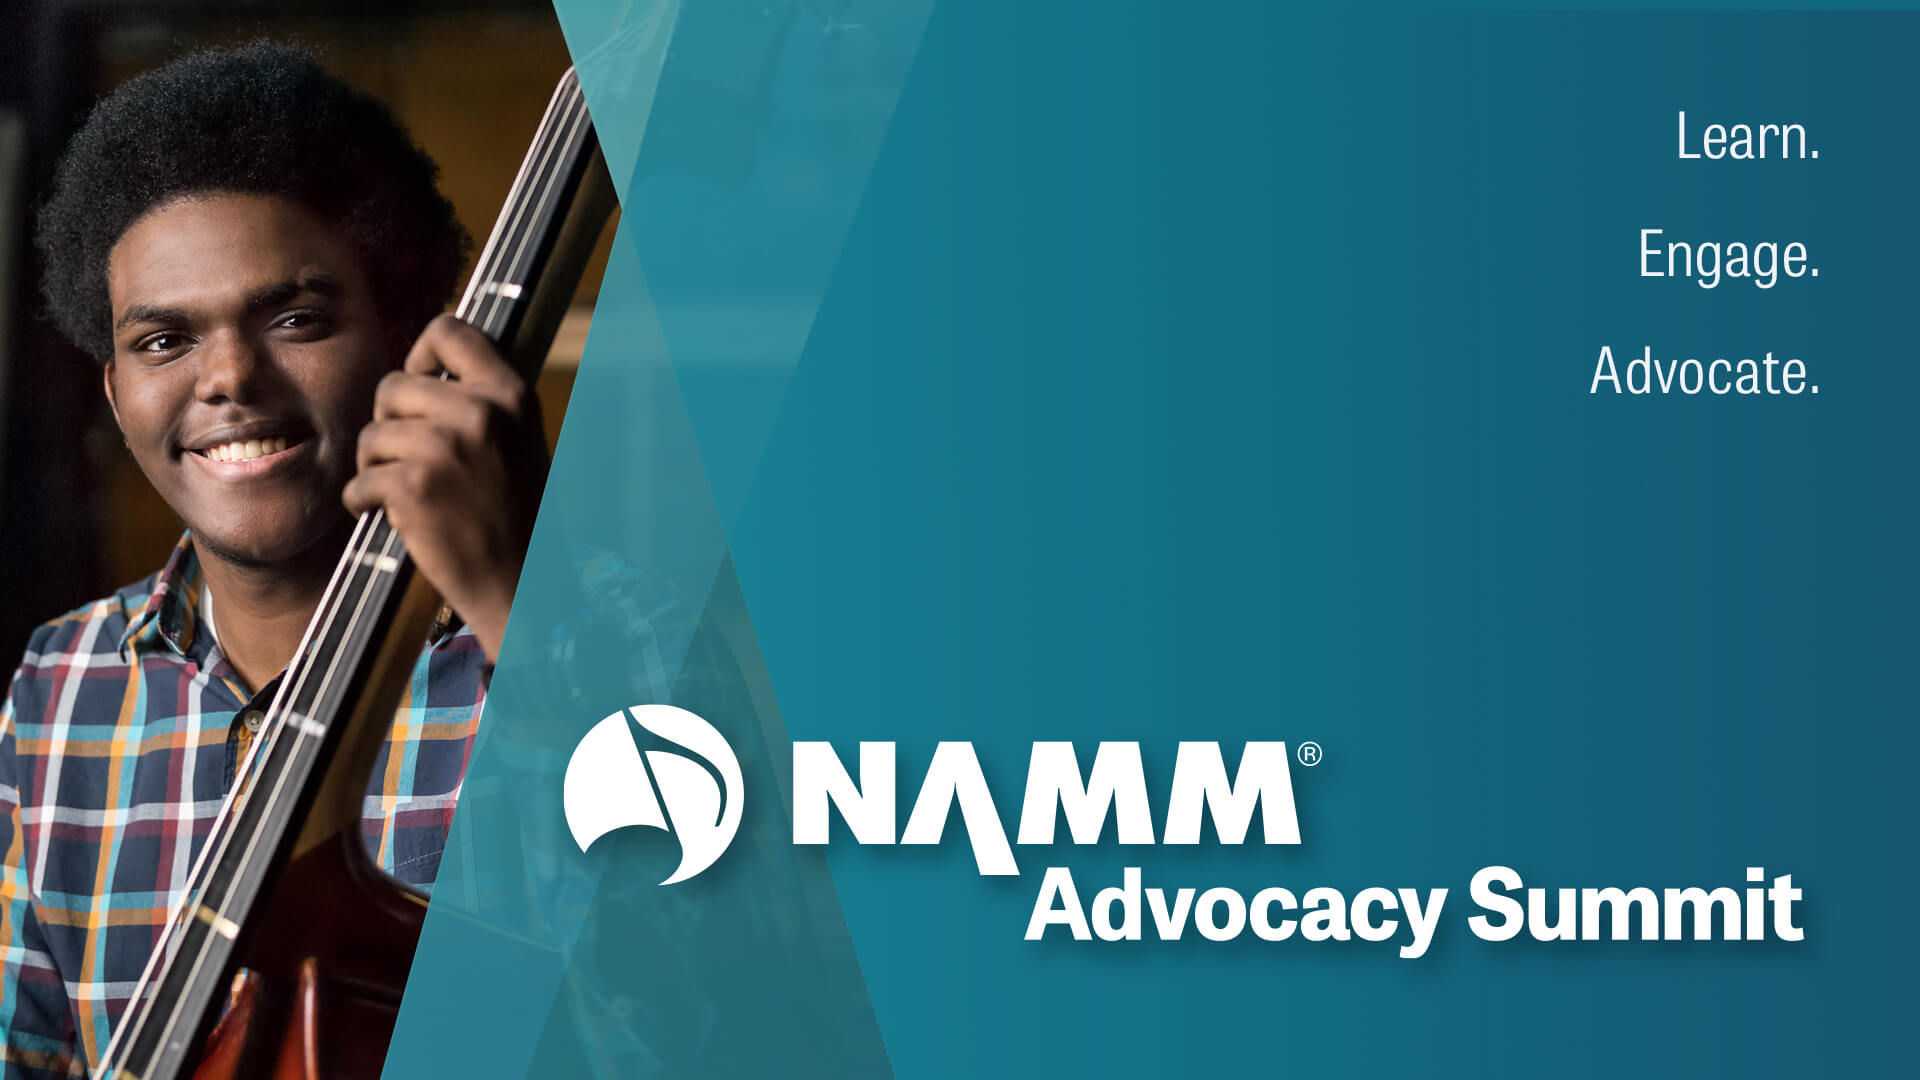 NAMM Advocacy Summit